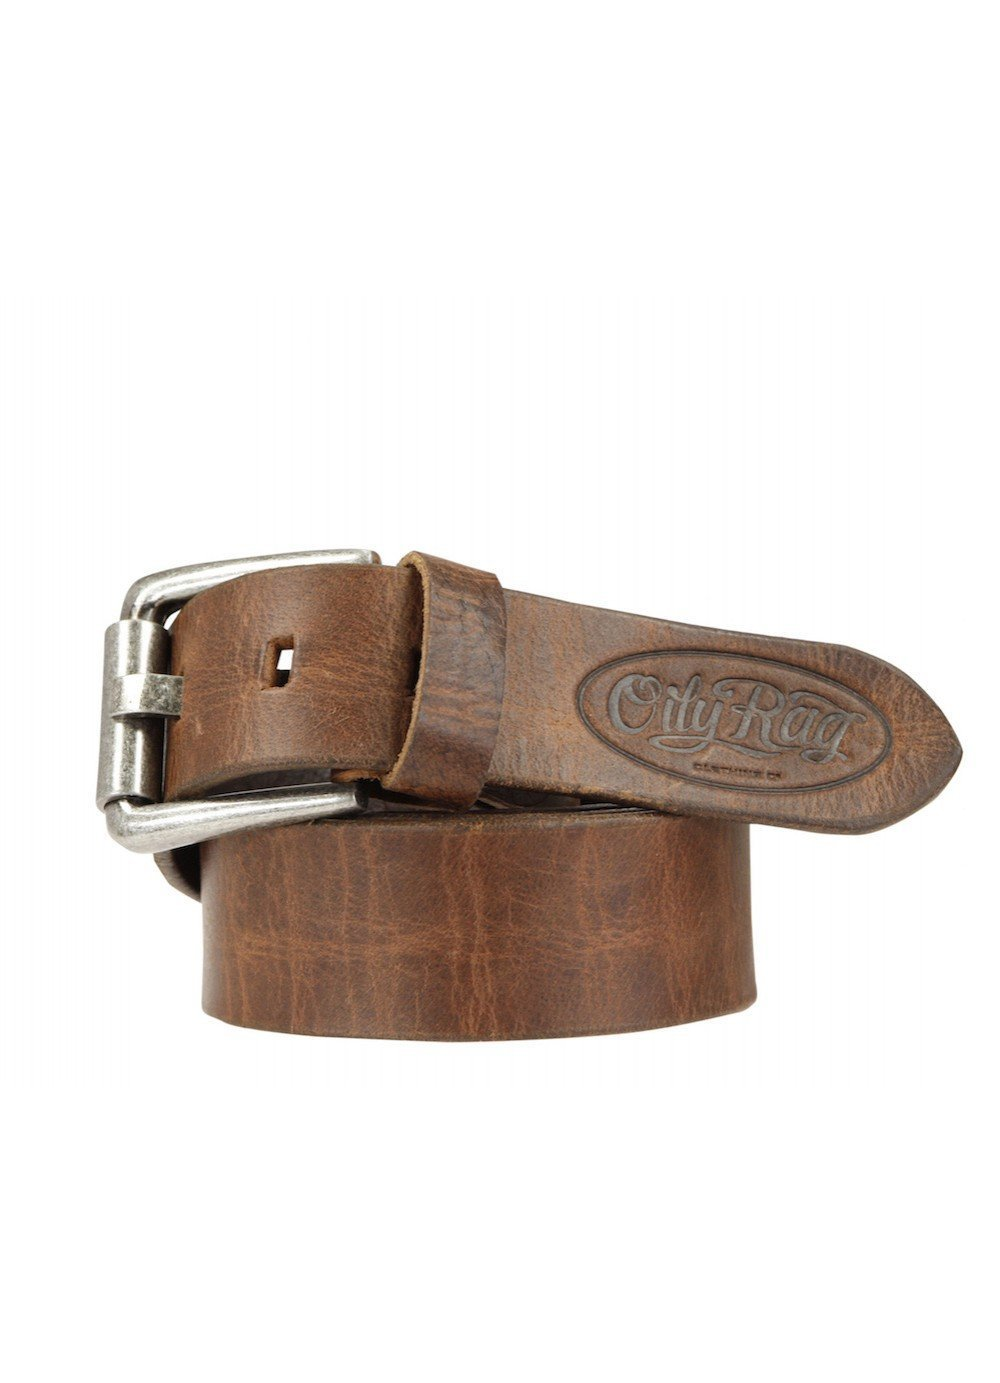 Oily Rag Clothing - Oily Rag Clothing Belt in Rust - Accessories - Salt Flats Clothing